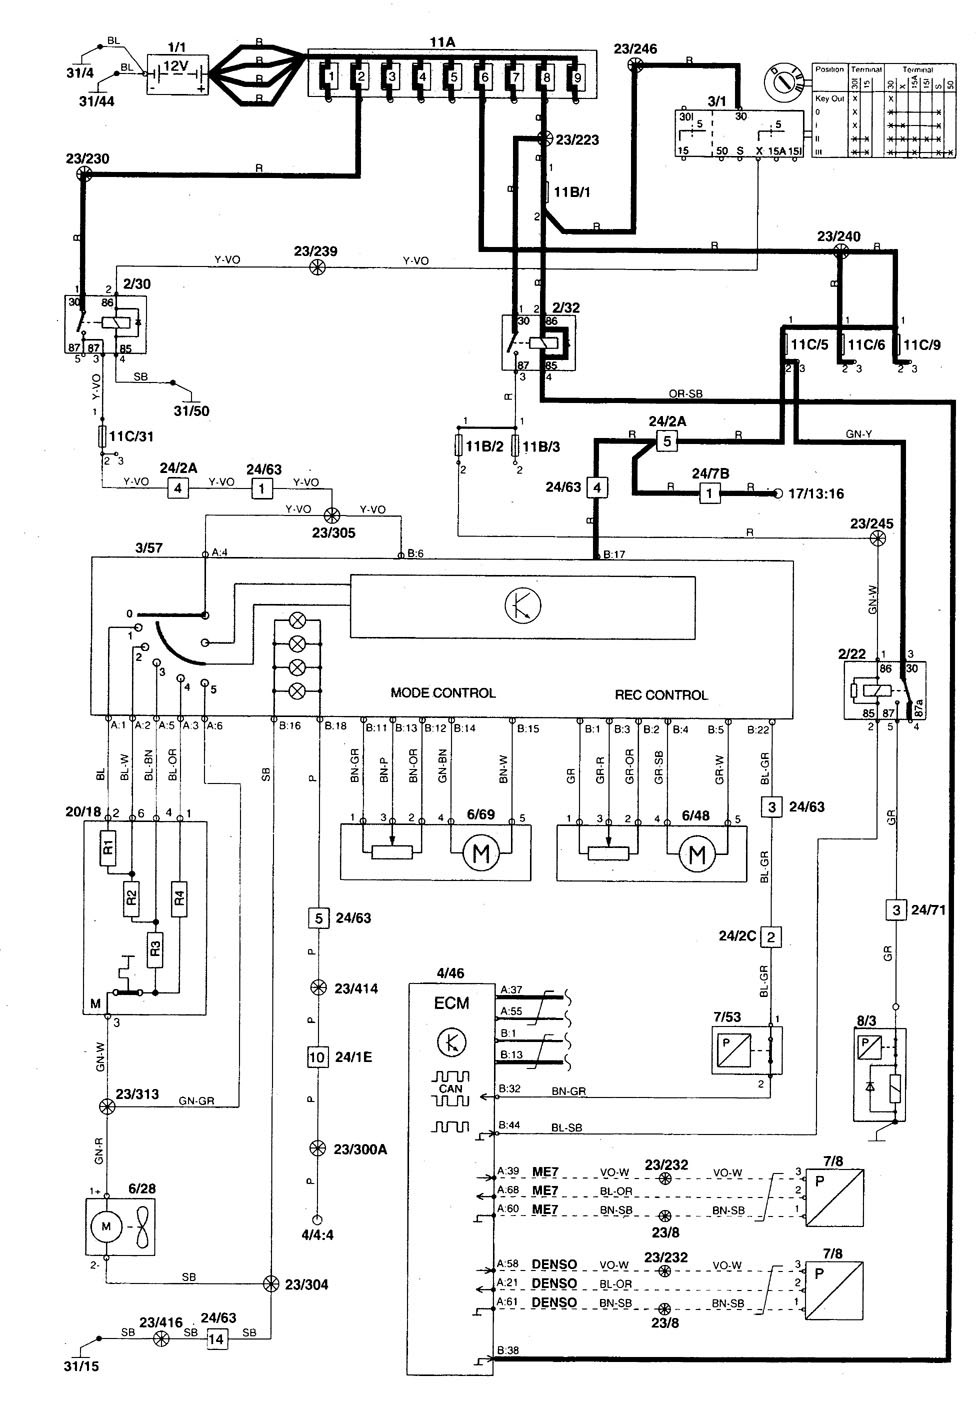 Volvo V70 1998 1999 wiring diagrams HVAC controls CARKNOWLEDGE